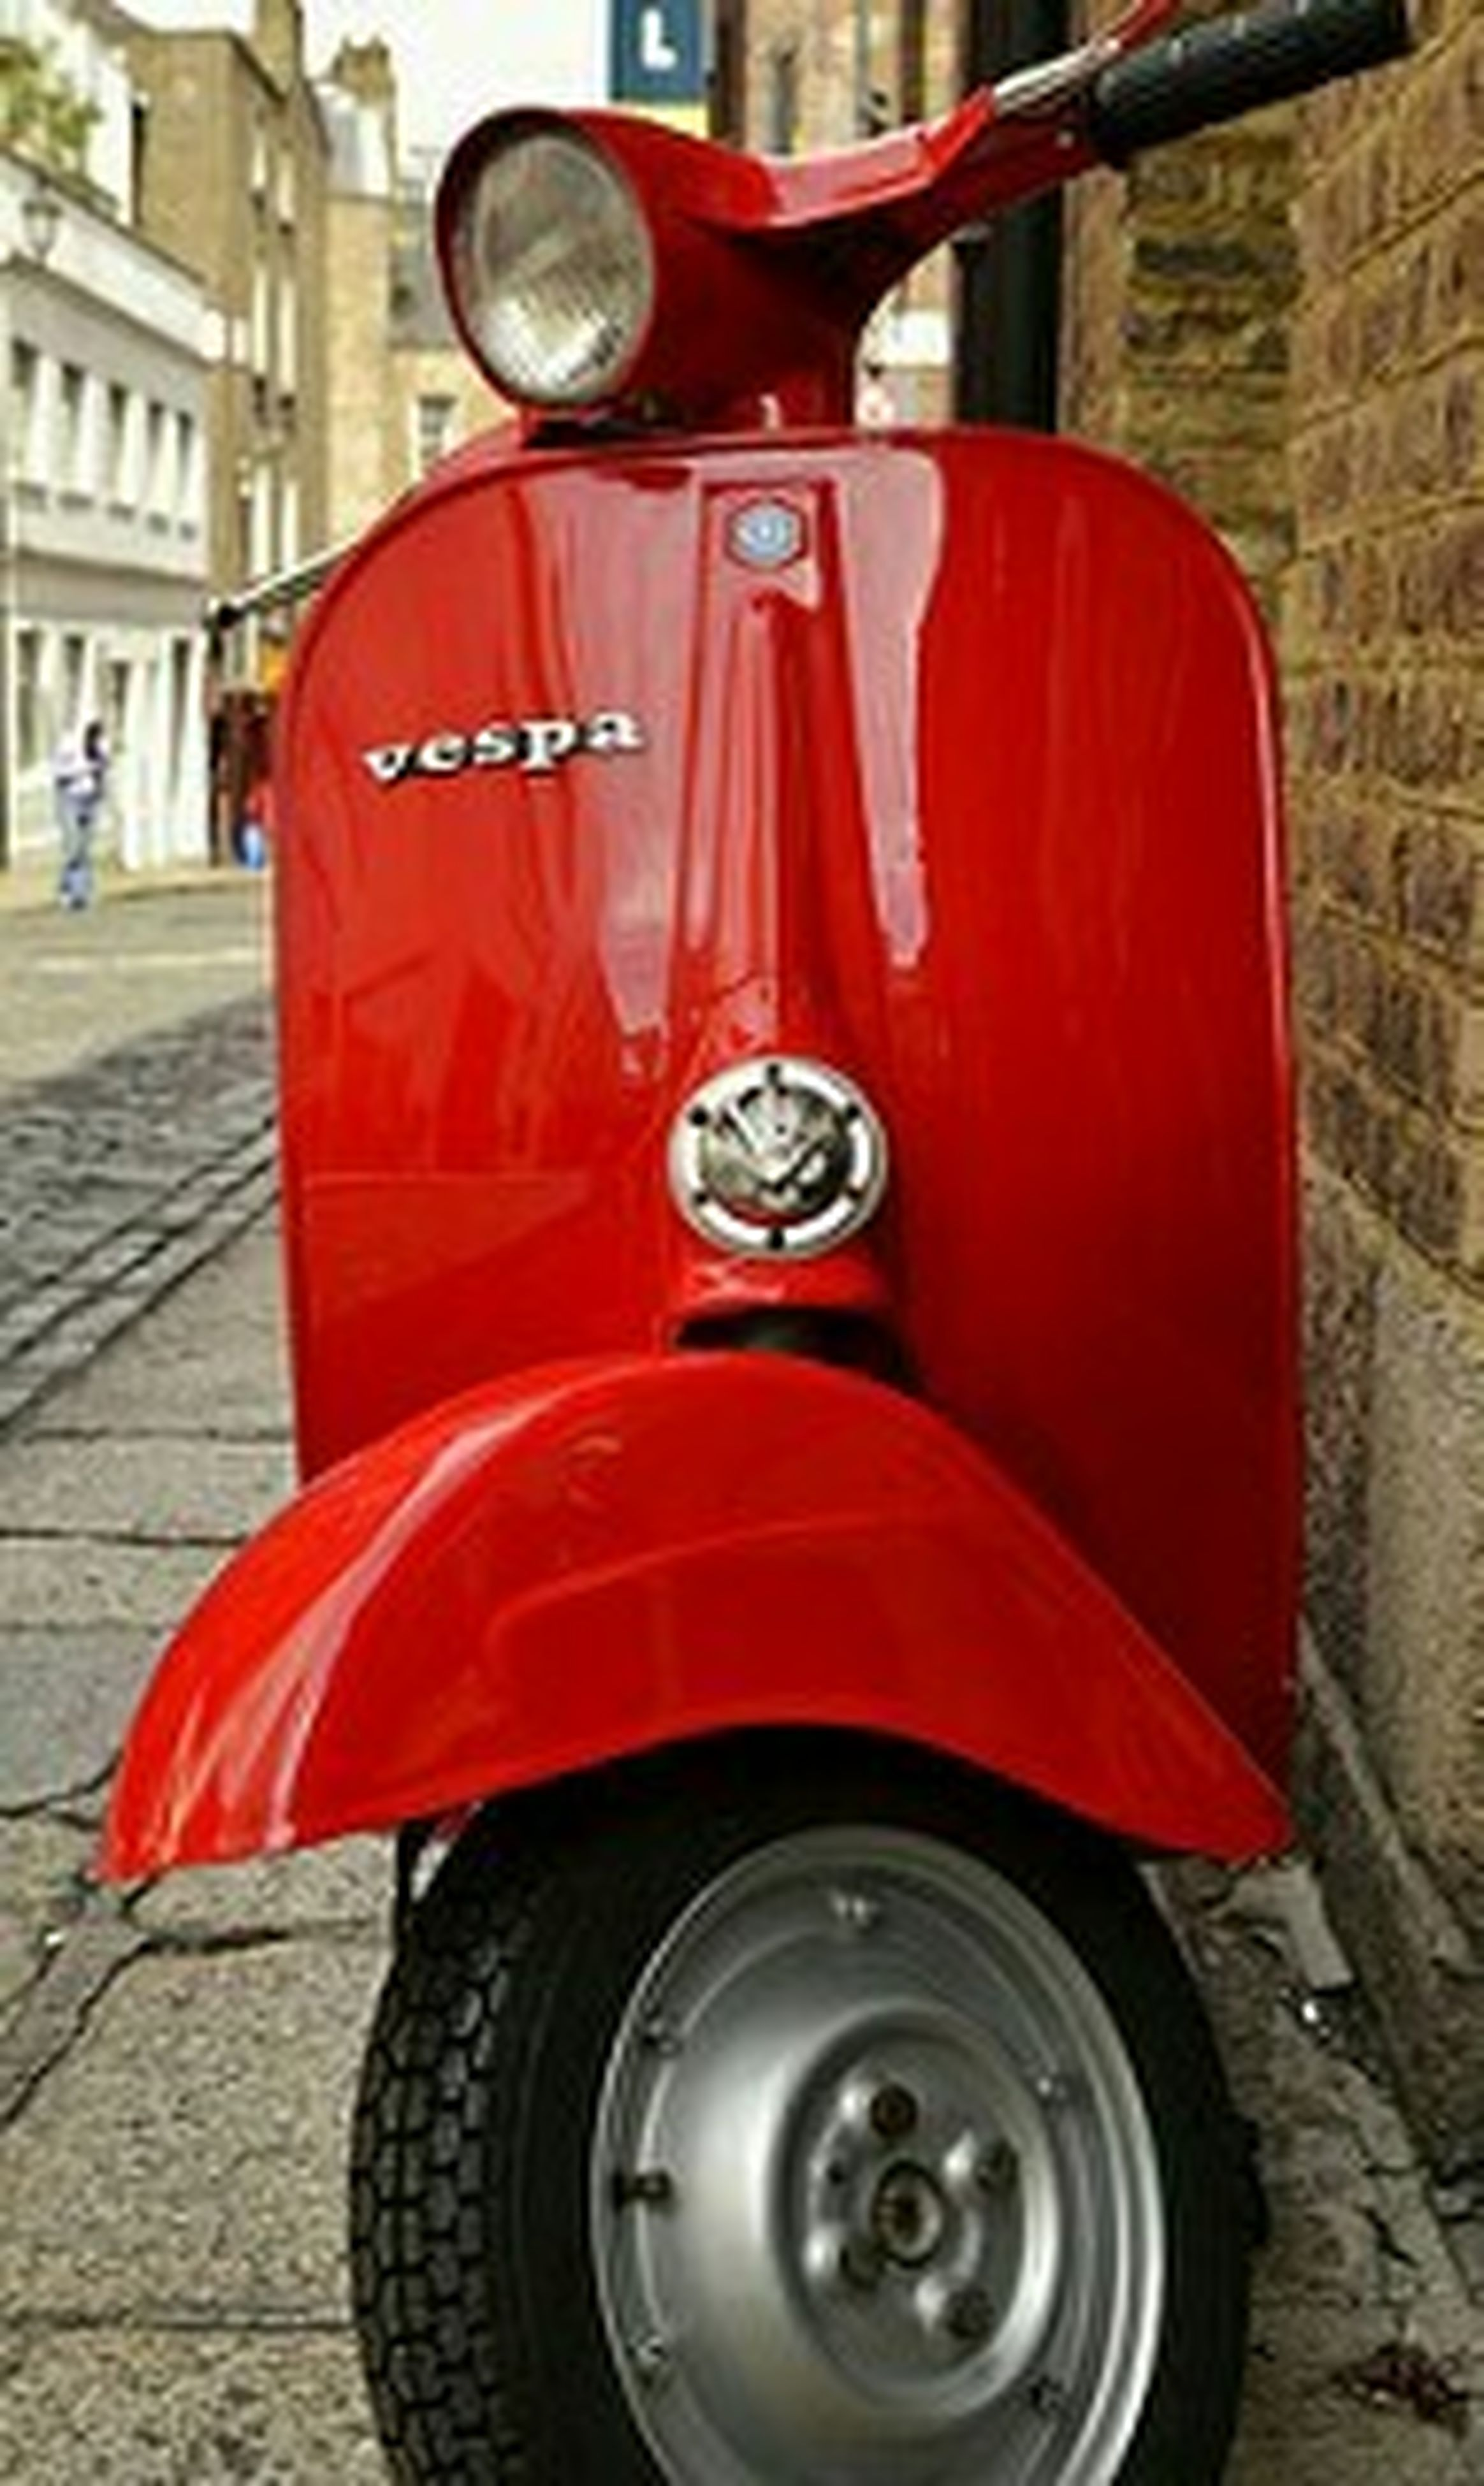 red, transportation, land vehicle, mode of transport, close-up, car, focus on foreground, old-fashioned, street, day, wheel, headlight, metal, outdoors, retro styled, stationary, no people, building exterior, protection, vintage car